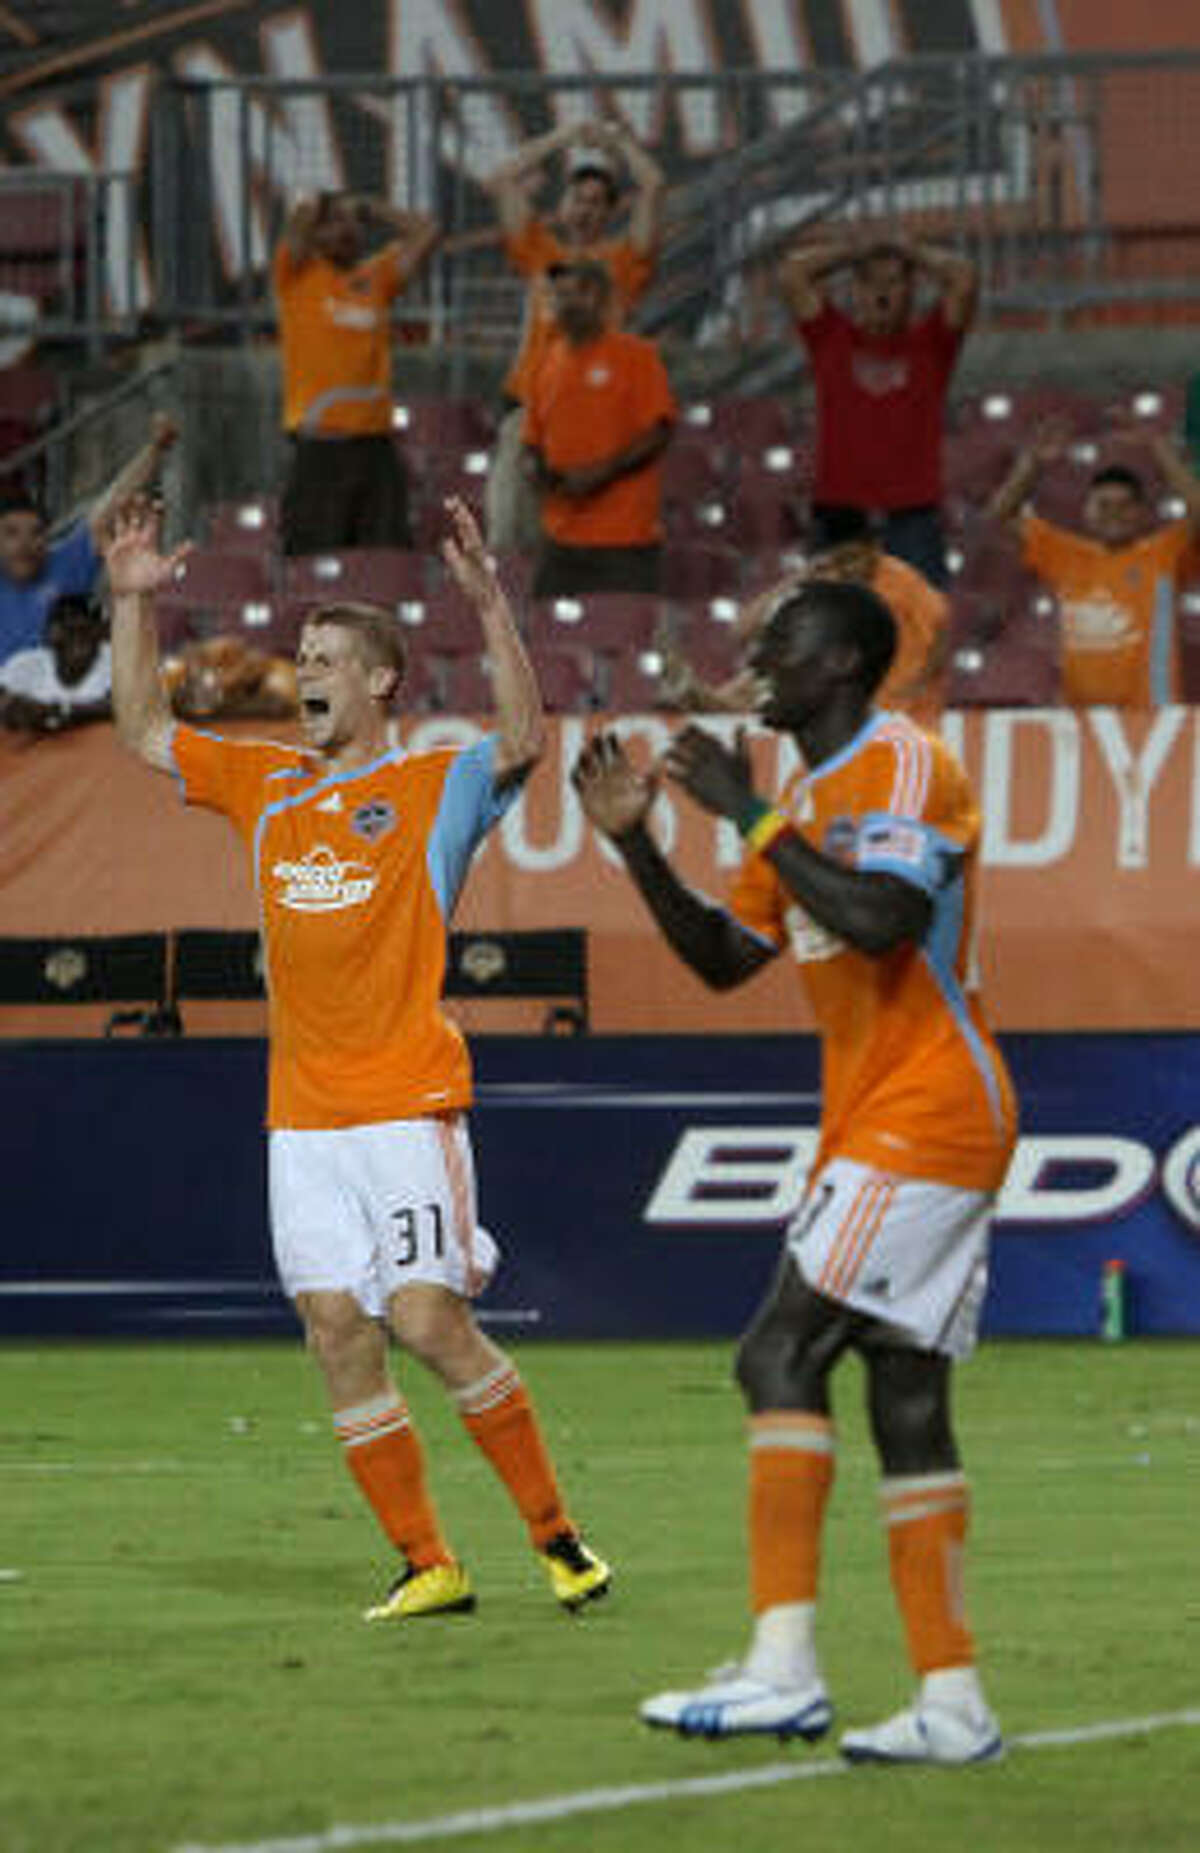 Dynamo defender Andrew Hainault and forward Dominic Oduro react to midfielder Lovel Palmer missing a shot in the 90th minute.